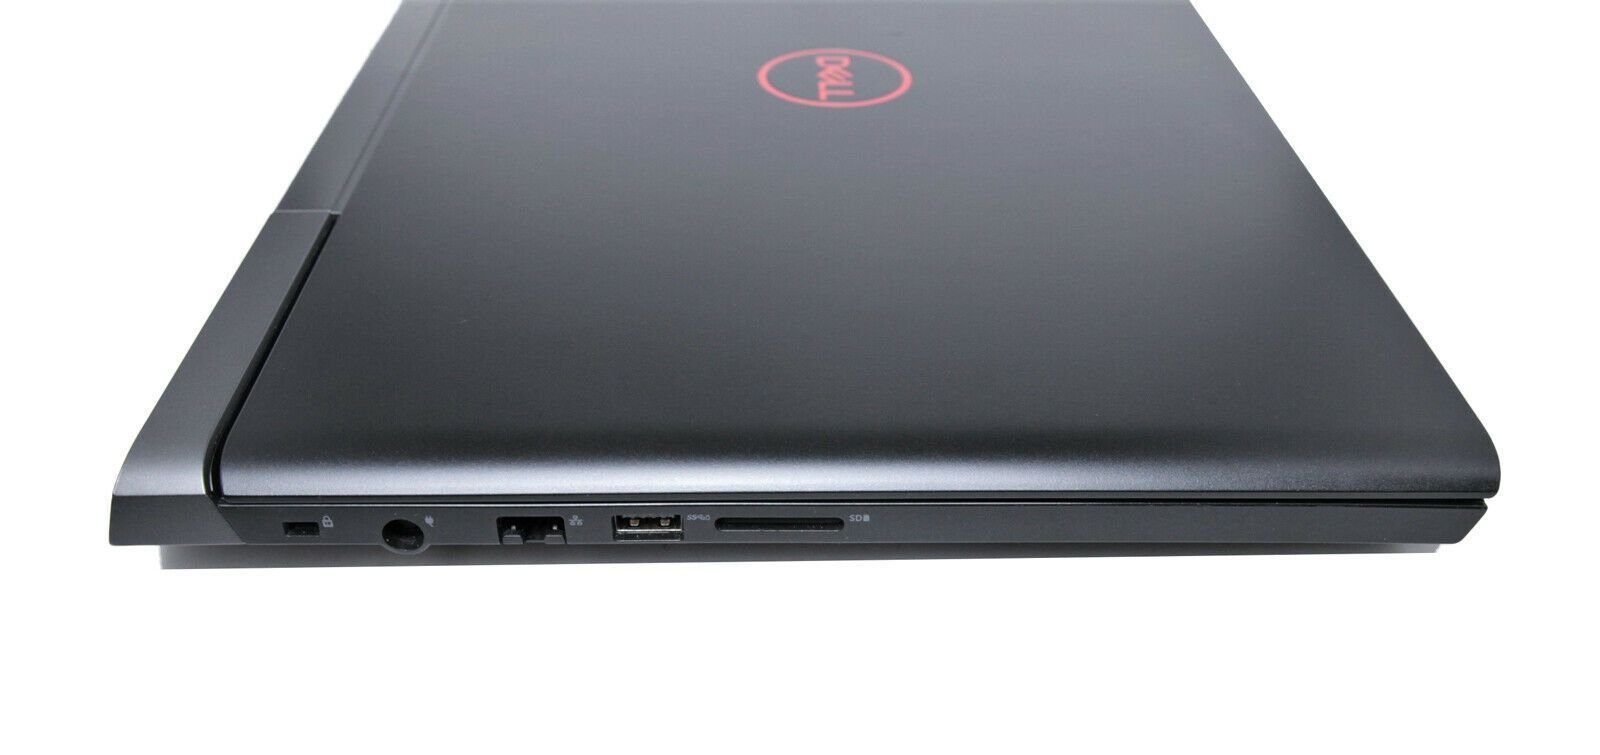 Dell 15 7577 IPS Gaming Laptop: GTX 1060 Max-Q, 256GB+ HDD, 16GB RAM - CruiseTech